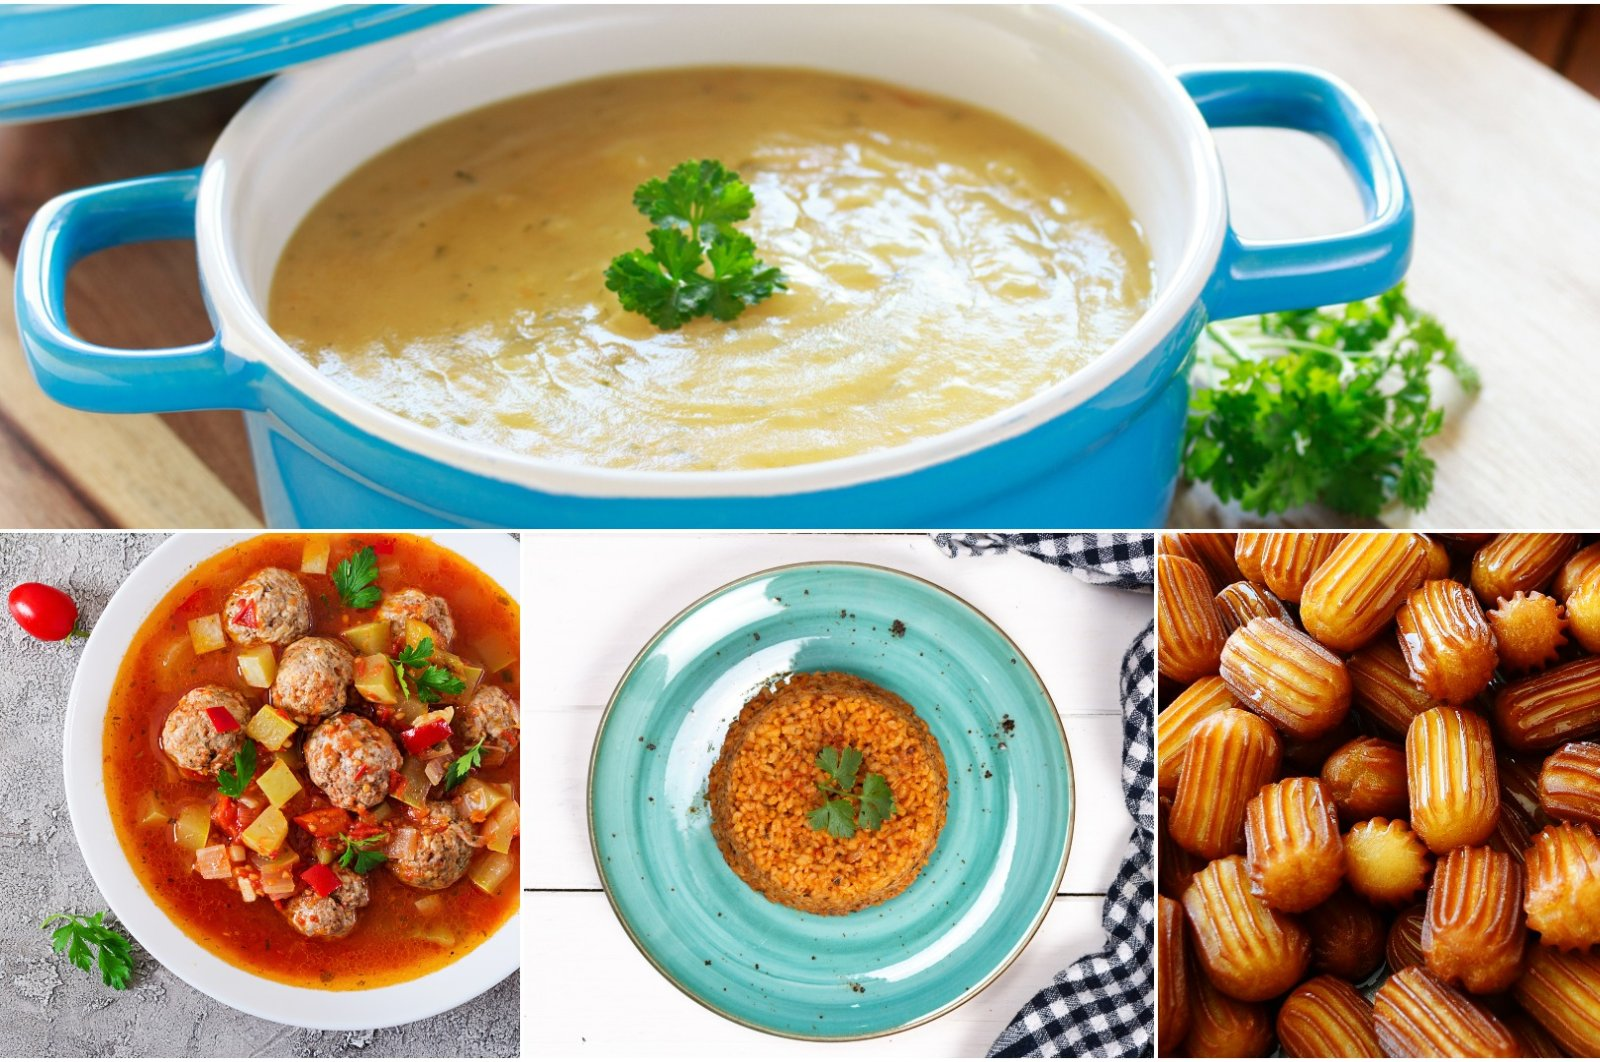 This week's iftar menu for Ramadan takes on simple Turkish dishes with little twists. (iStock Photos)